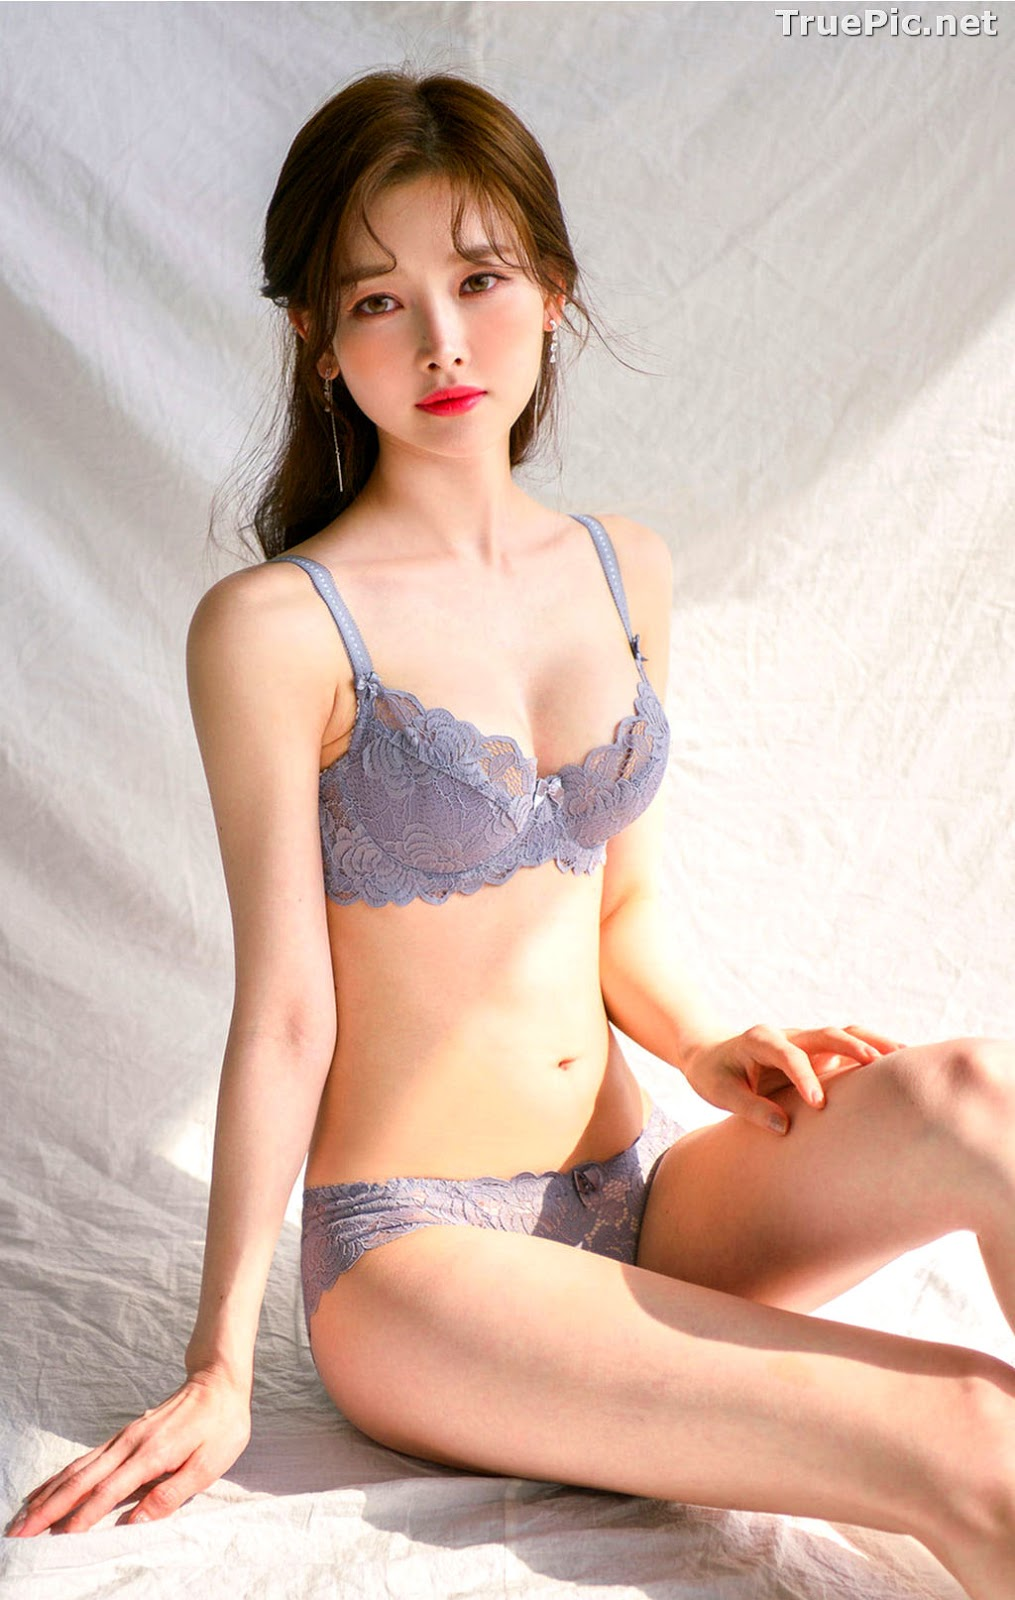 Image Korean Fashion Model - Kim Hee Jeong - Lingerie Gift for You - TruePic.net - Picture-1